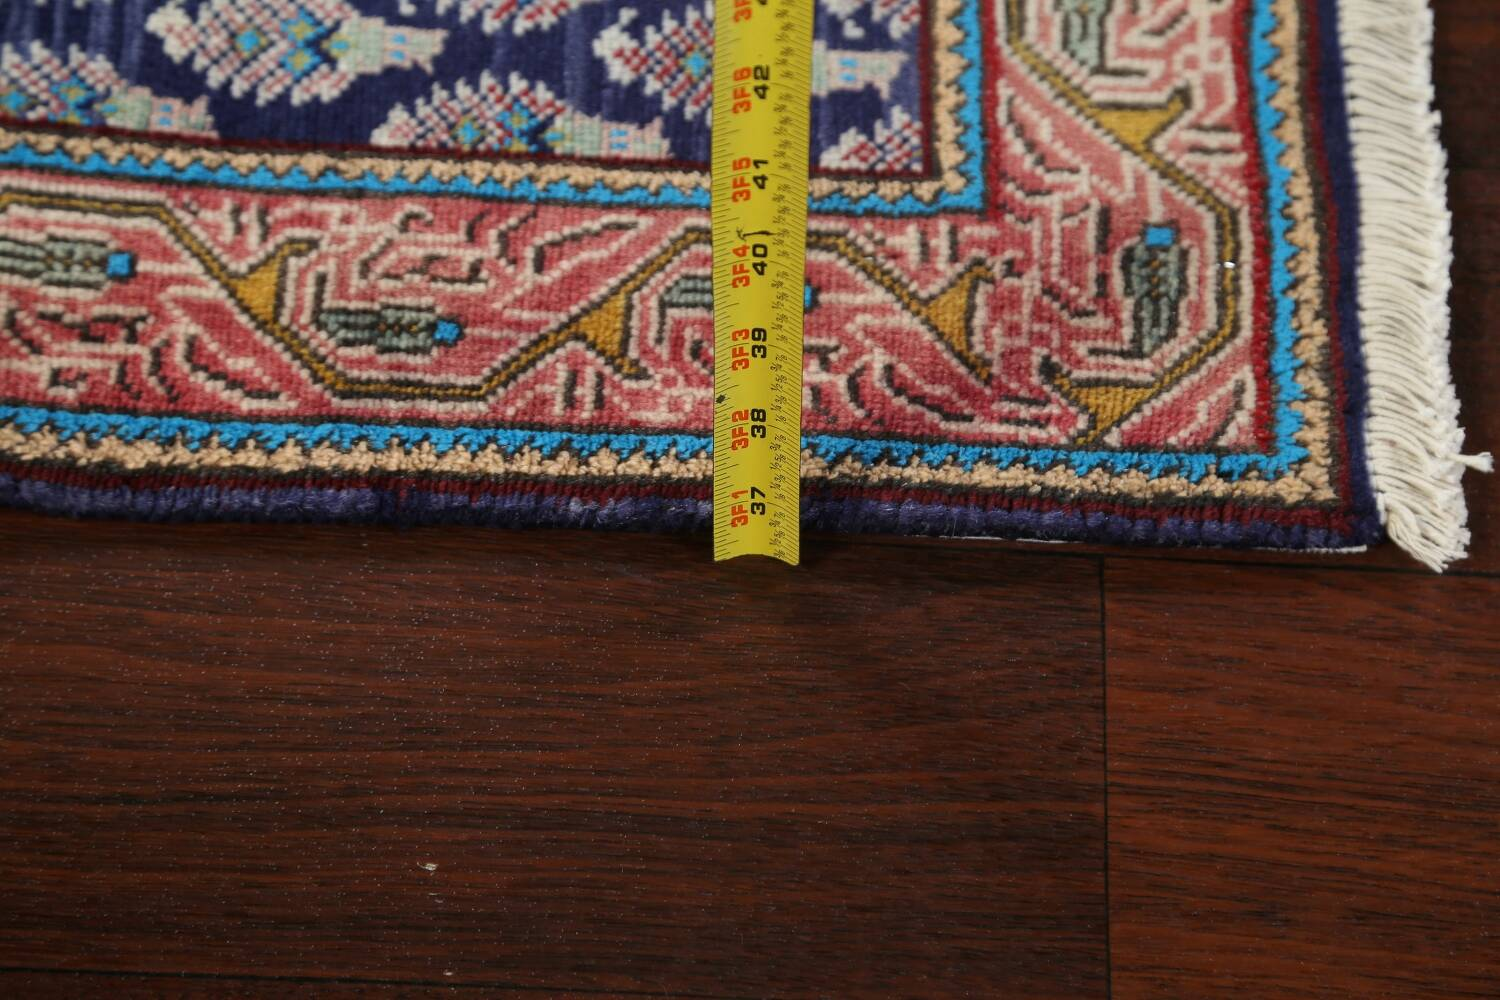 All-Over Navy Blue Tabriz Persian Area Rug 2x3 image 15